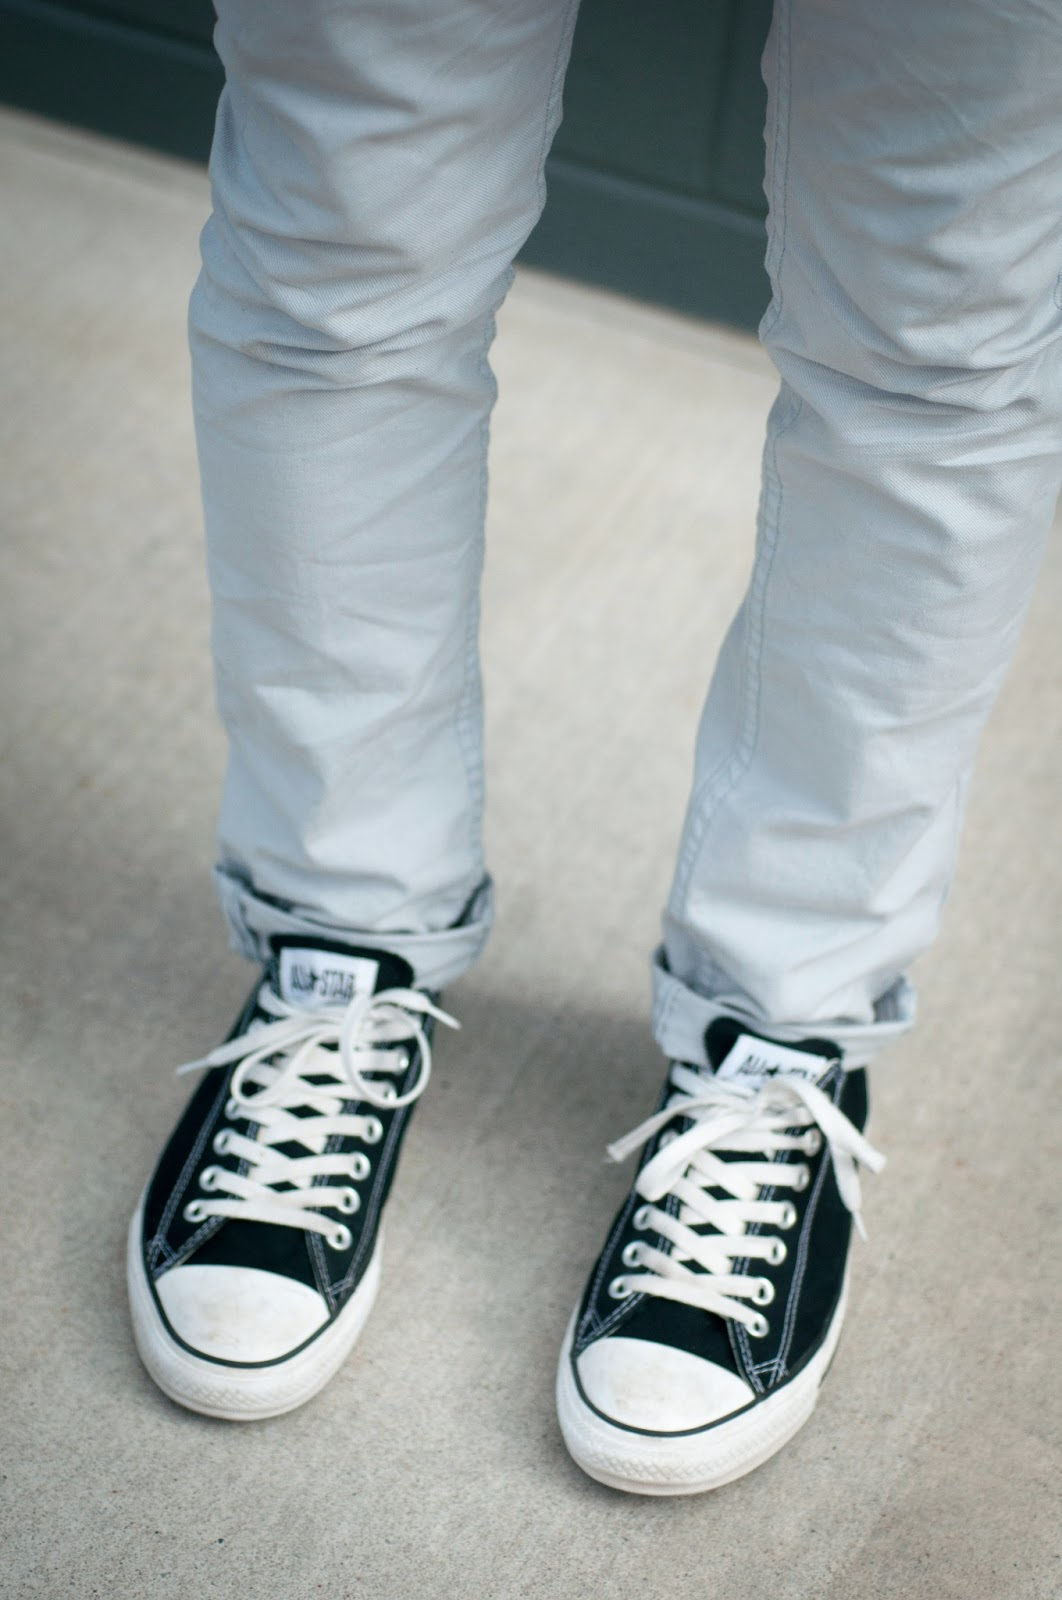 mens style blog, mens fashion blog, converse, black converse, all saints, all saints cigarette jeans